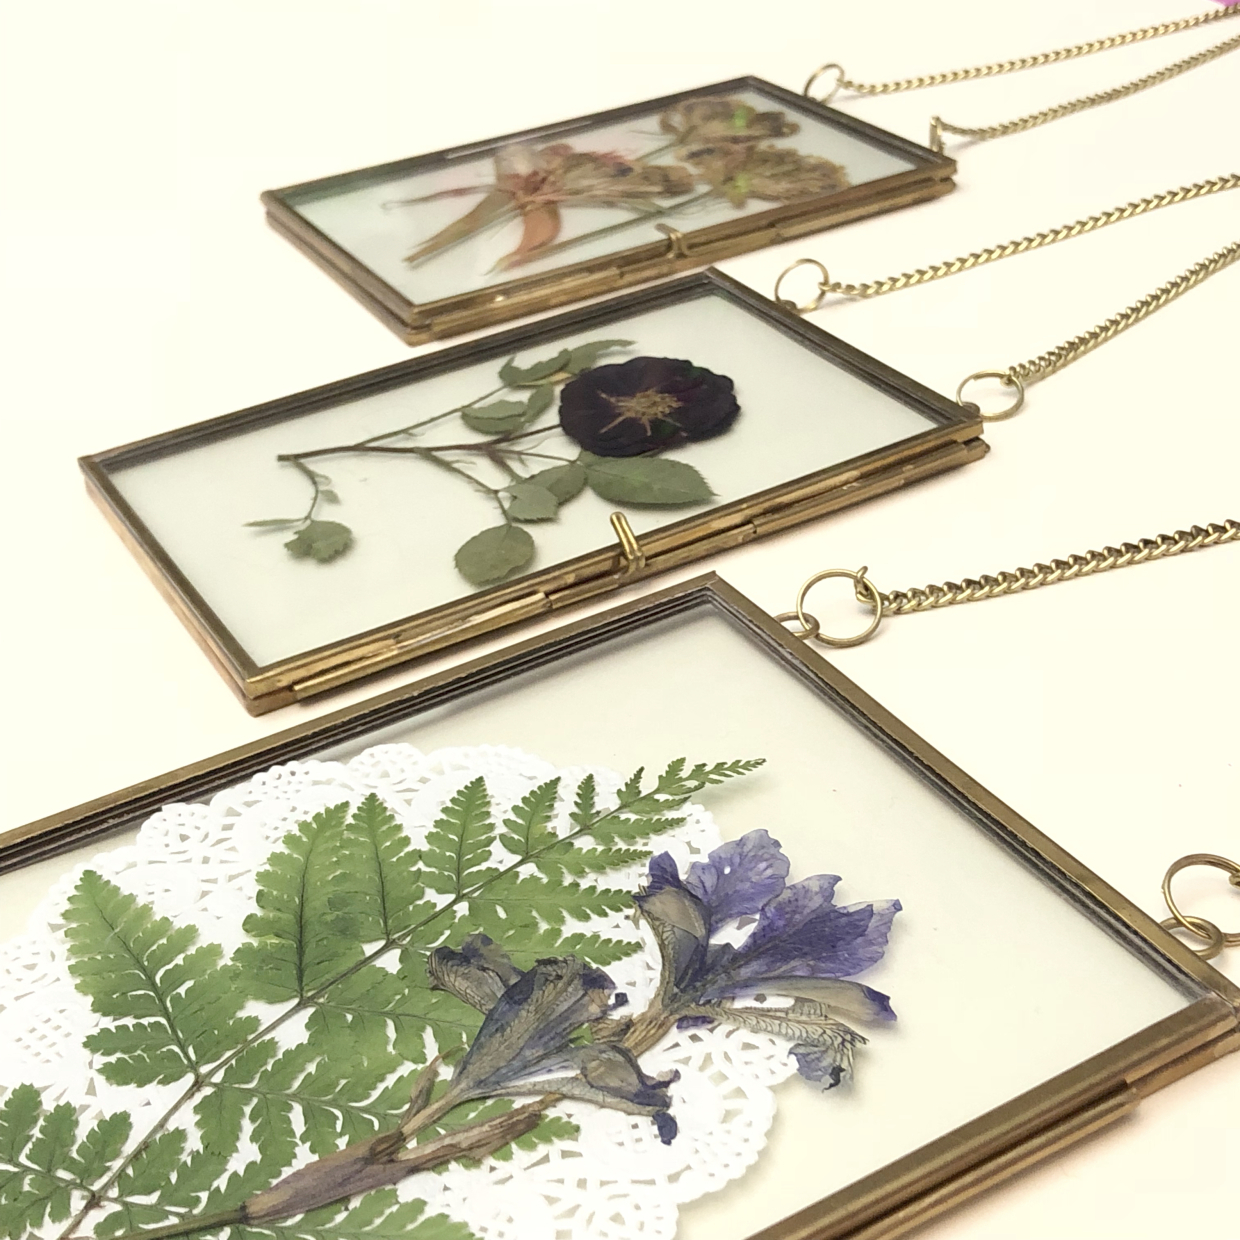 These stunning pressed flower pendants are unique pieces to hang in your home - and a fun DIY